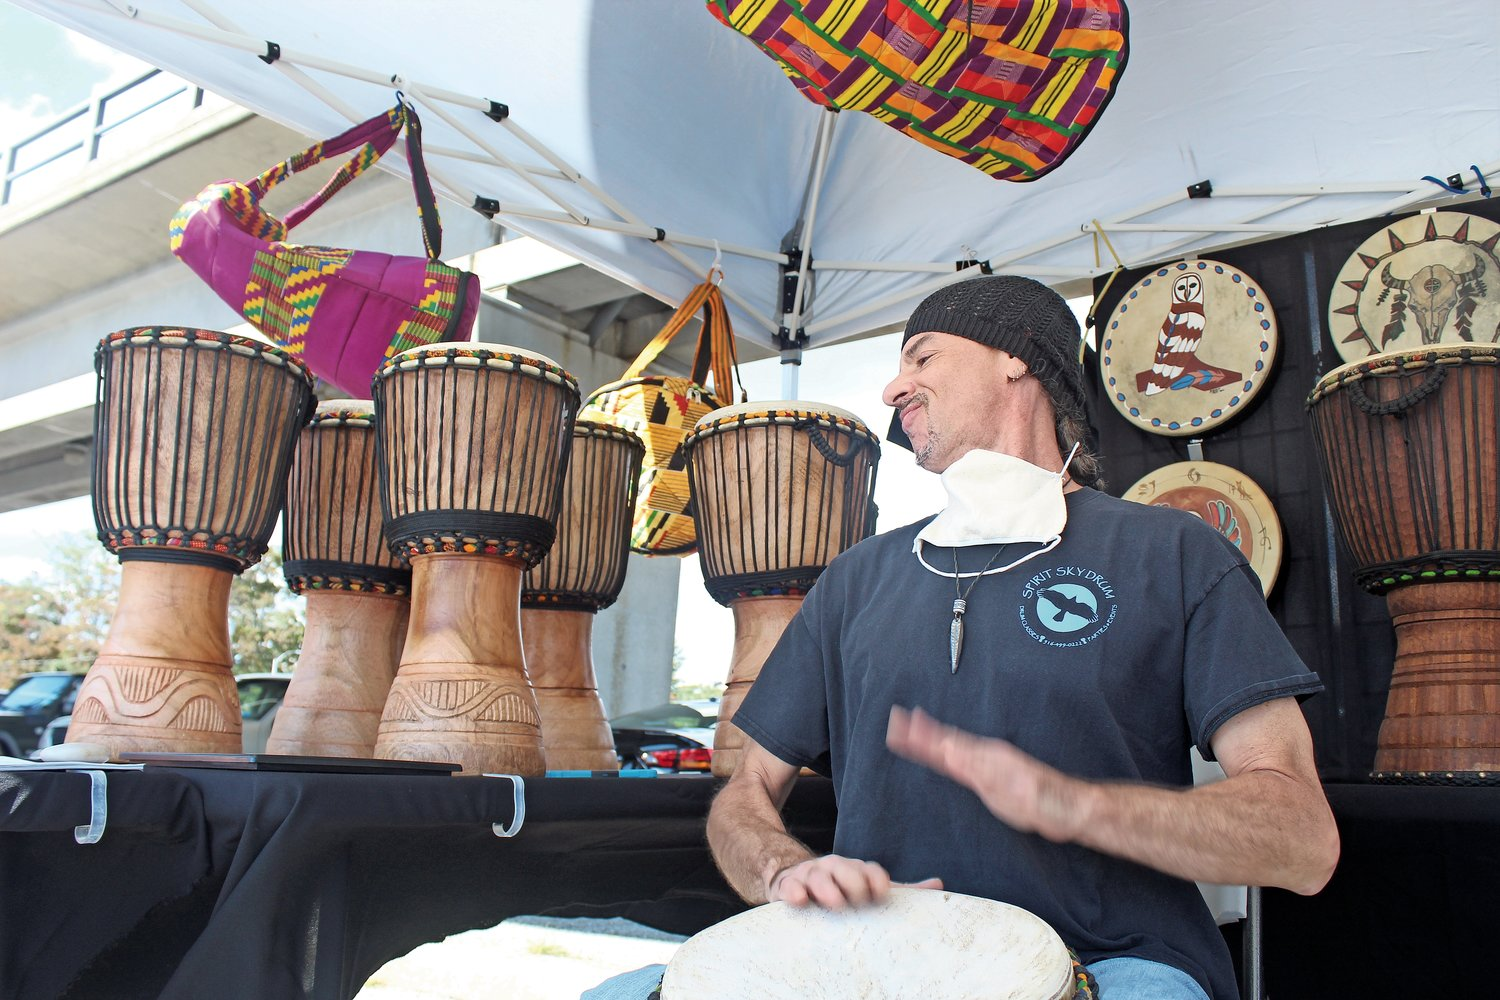 George Schultze, owner of Spirit Sky Drum in Freeport, played a djembe drum to attract visitors to his booth.